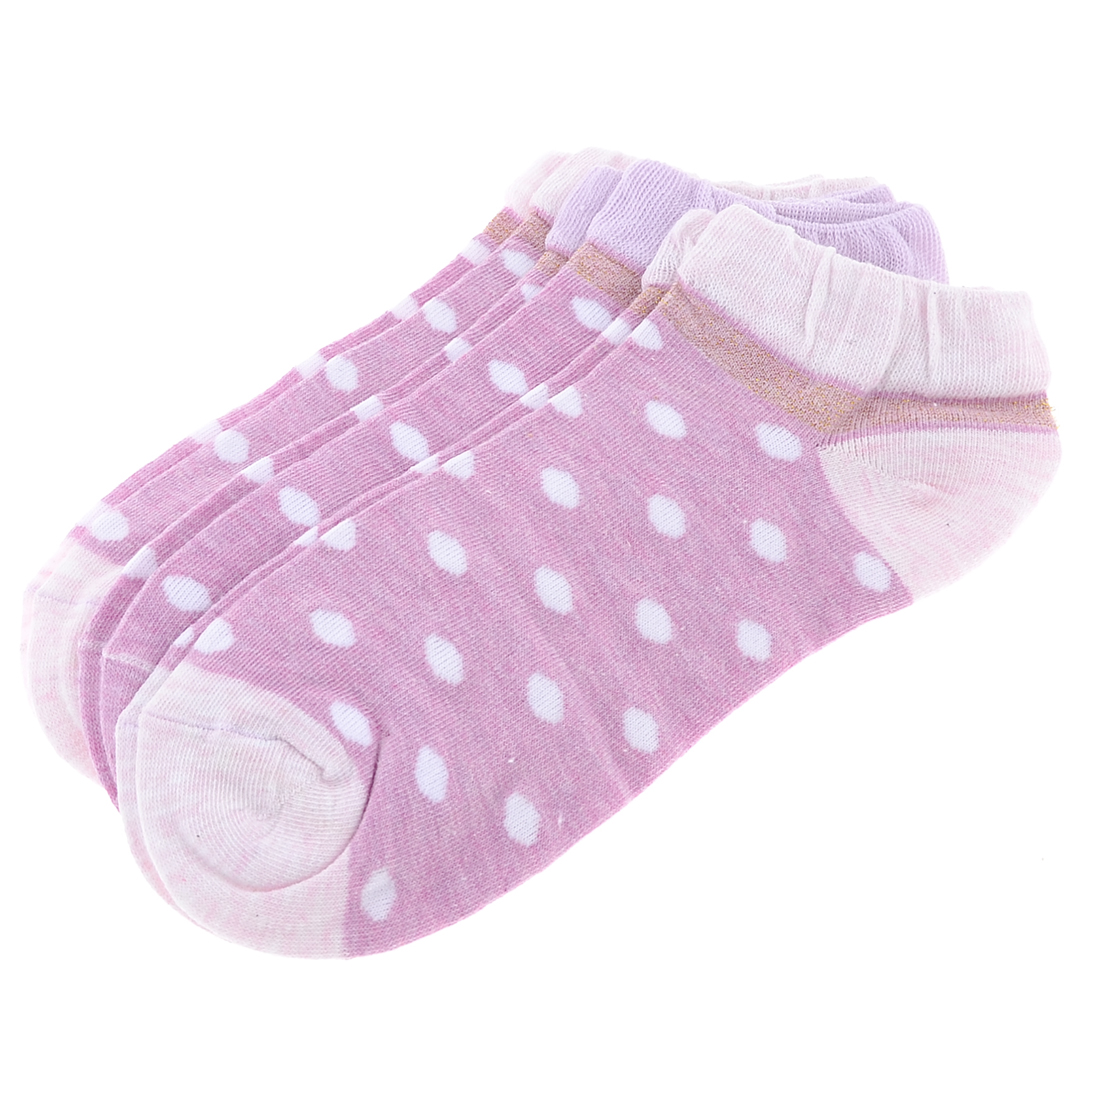 3 Pair Pale Pink Spot Dot Pattern Elastic Ankle Socks for Woman